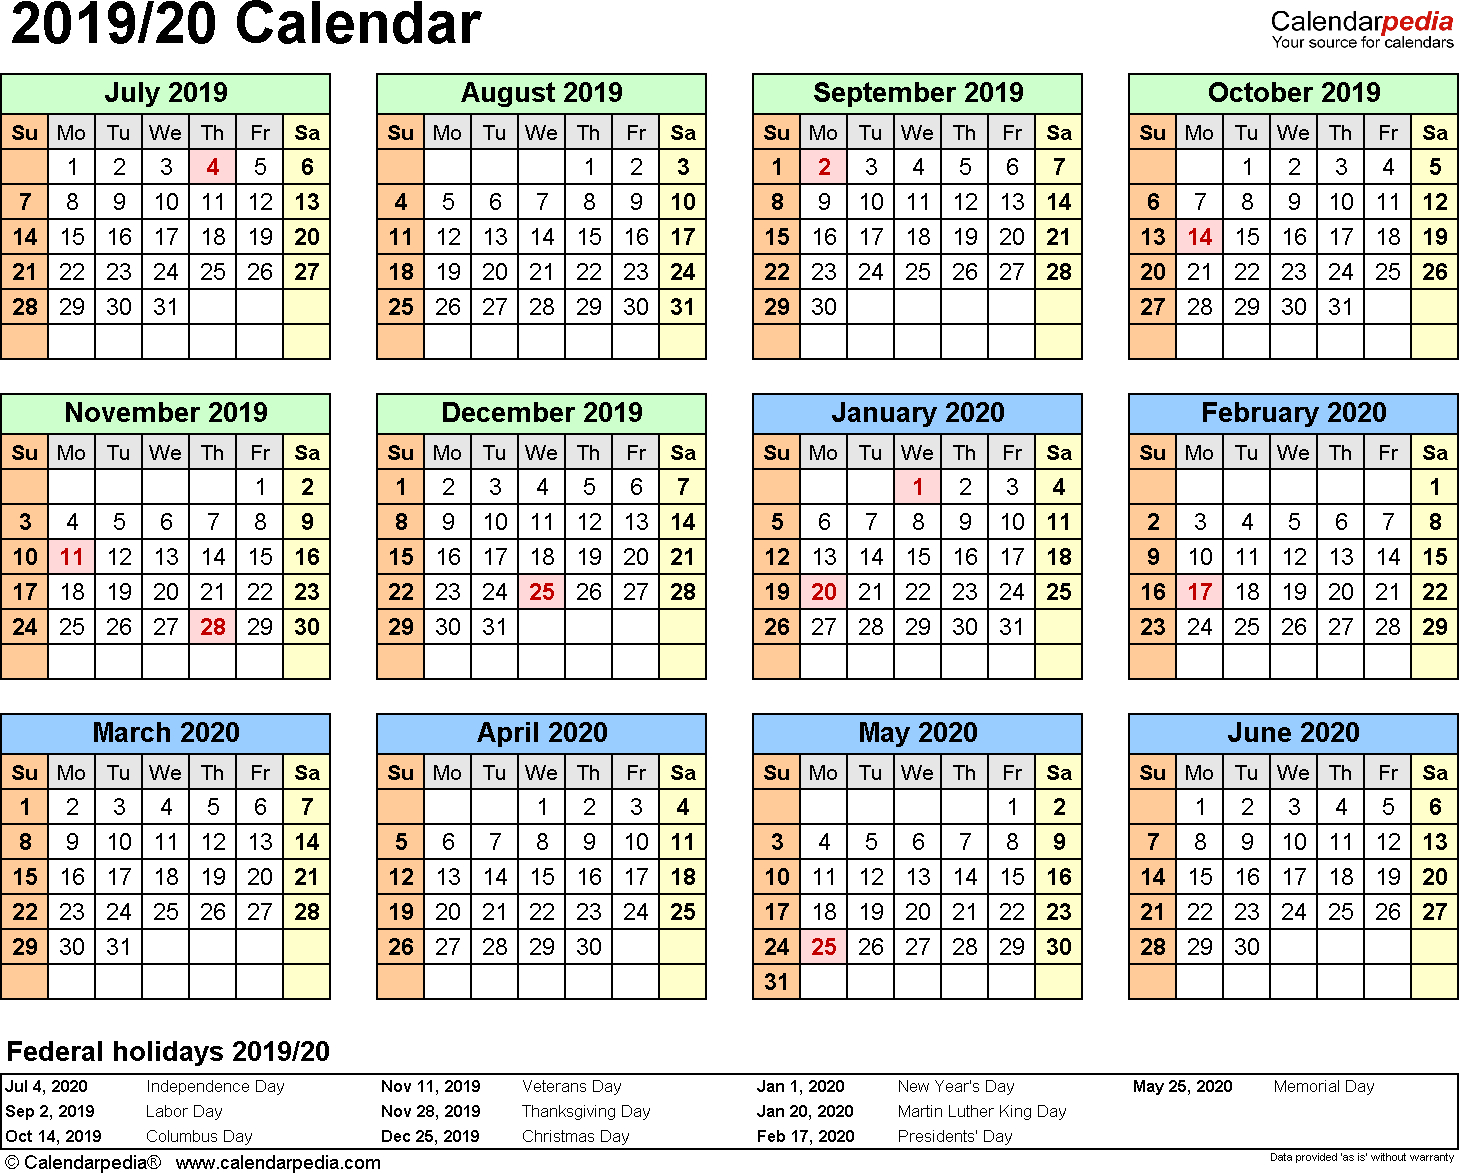 Split Year Calendar 2019/20 (July To June) - Pdf Templates throughout Printable Calendars July 2019 To June 2020